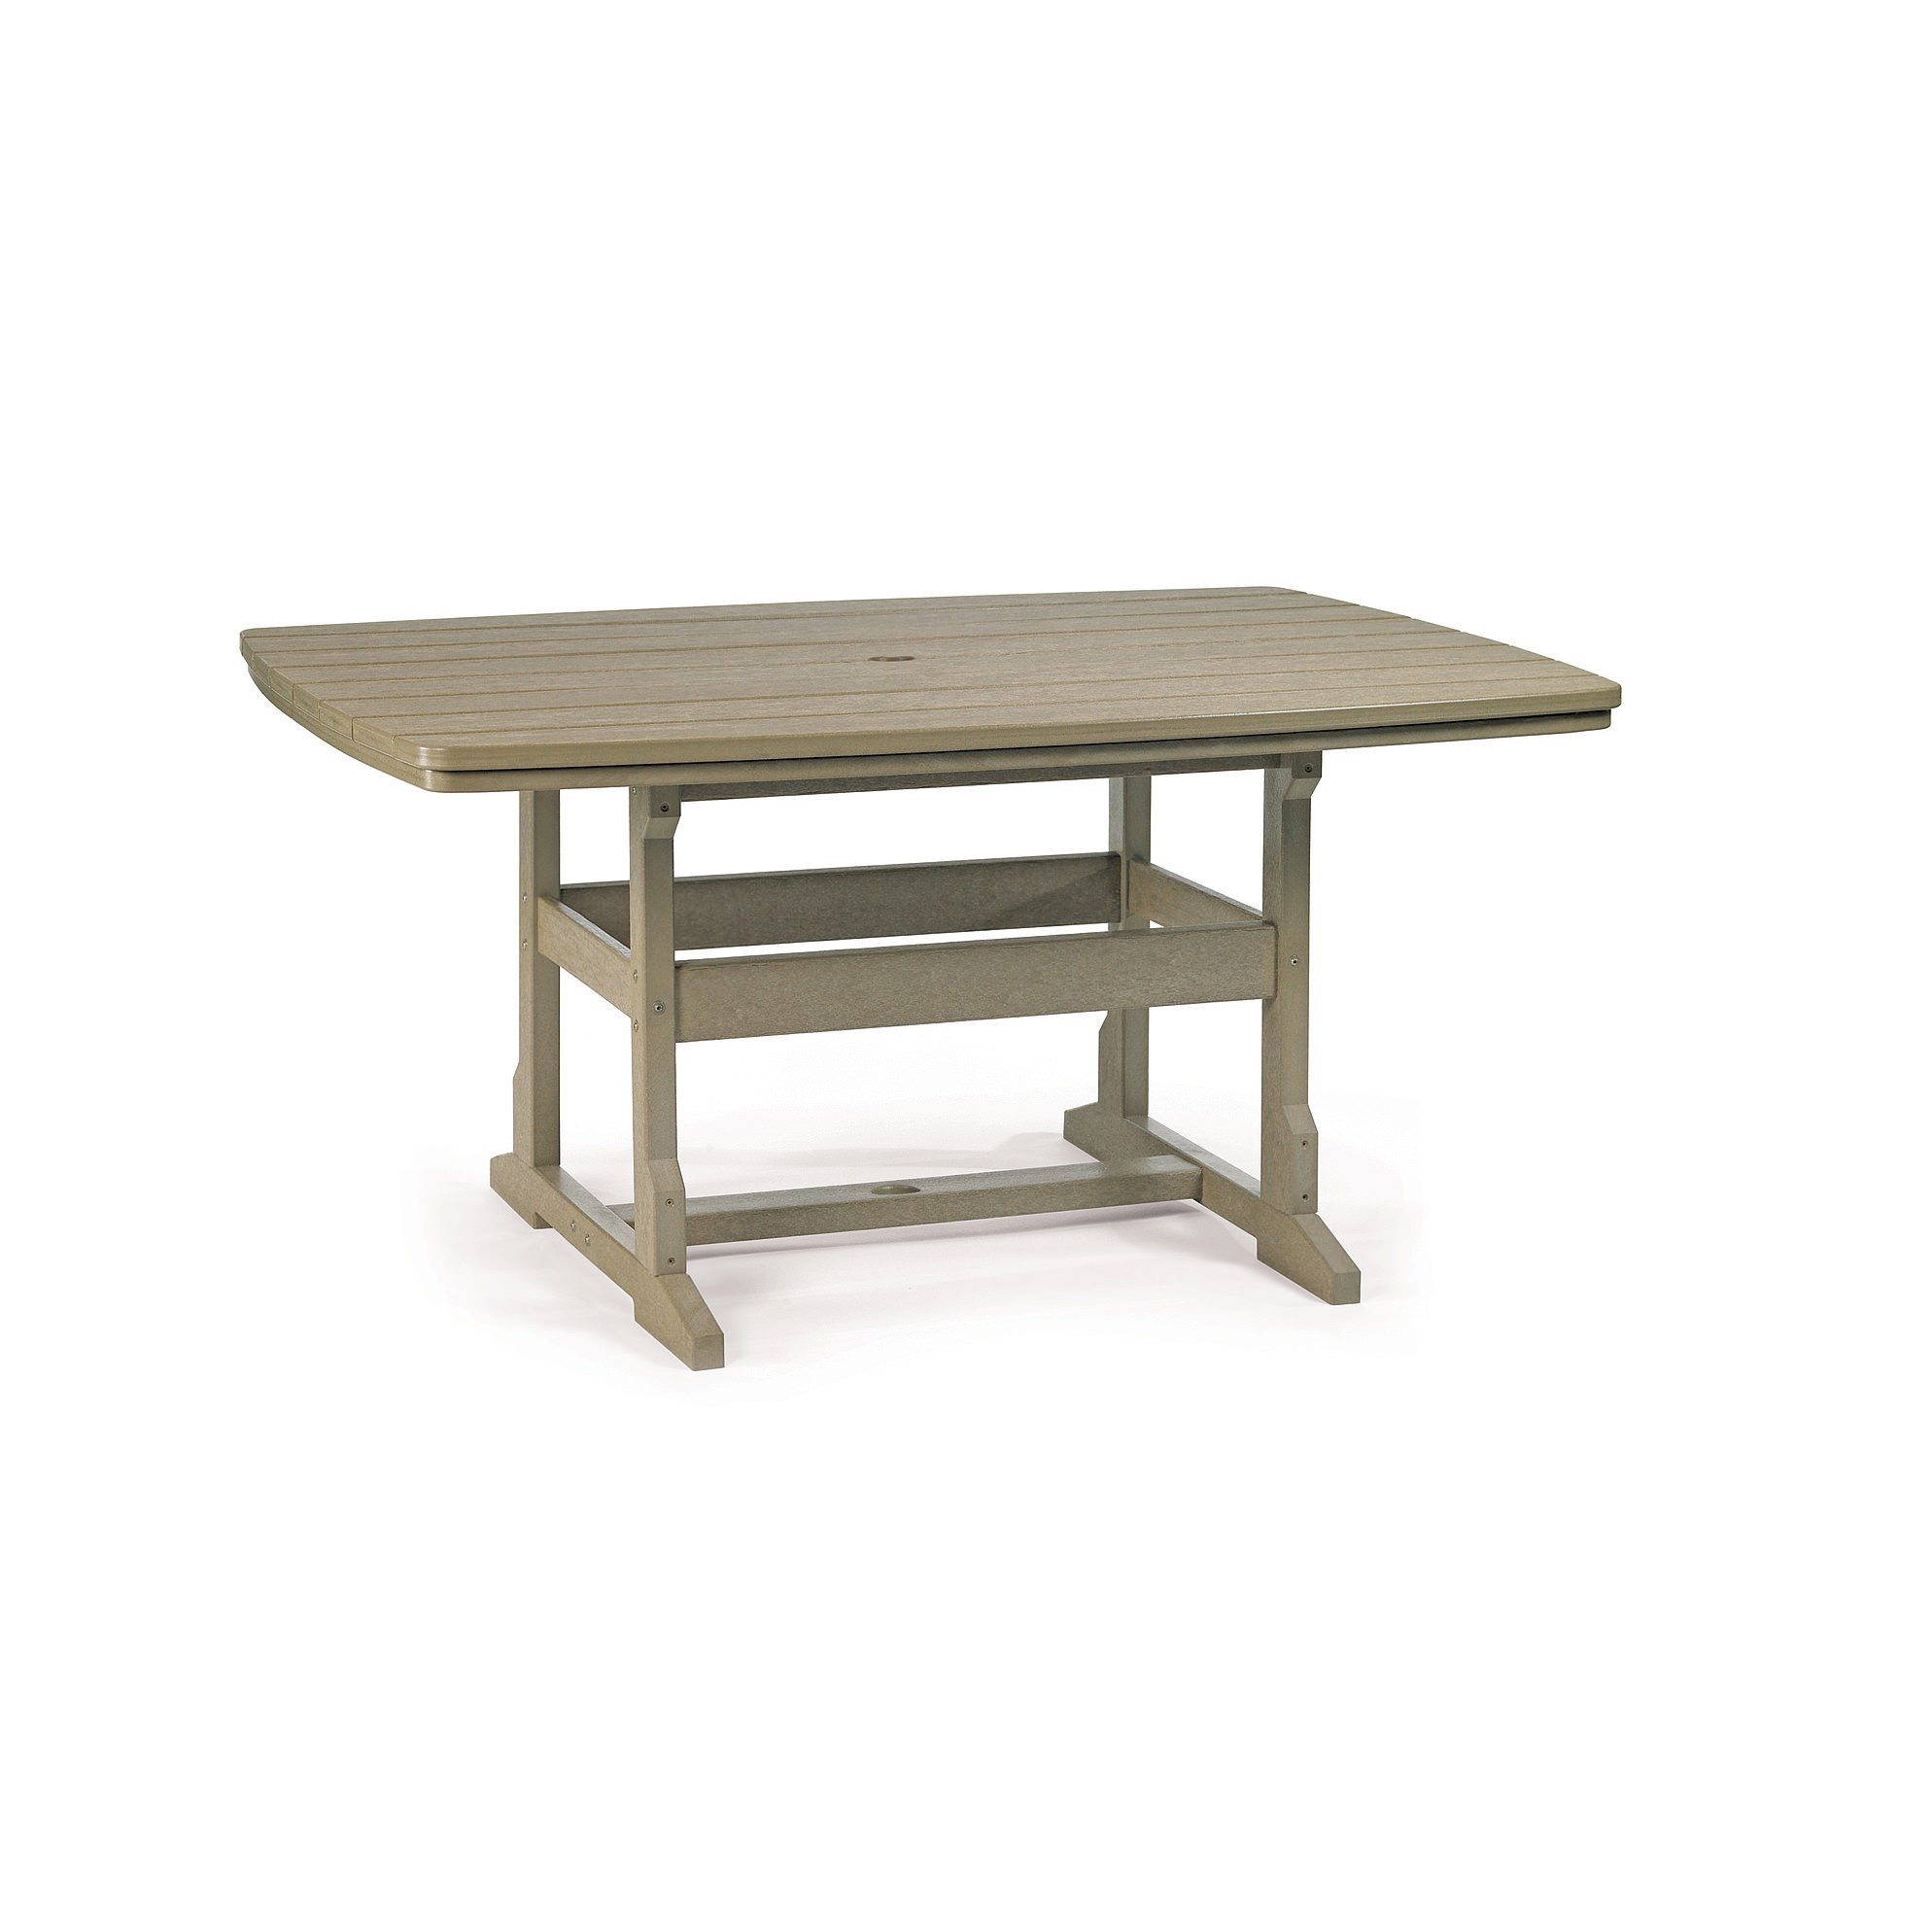 BreezestaTM 42 X 60 Inch Rectangular Dining Table